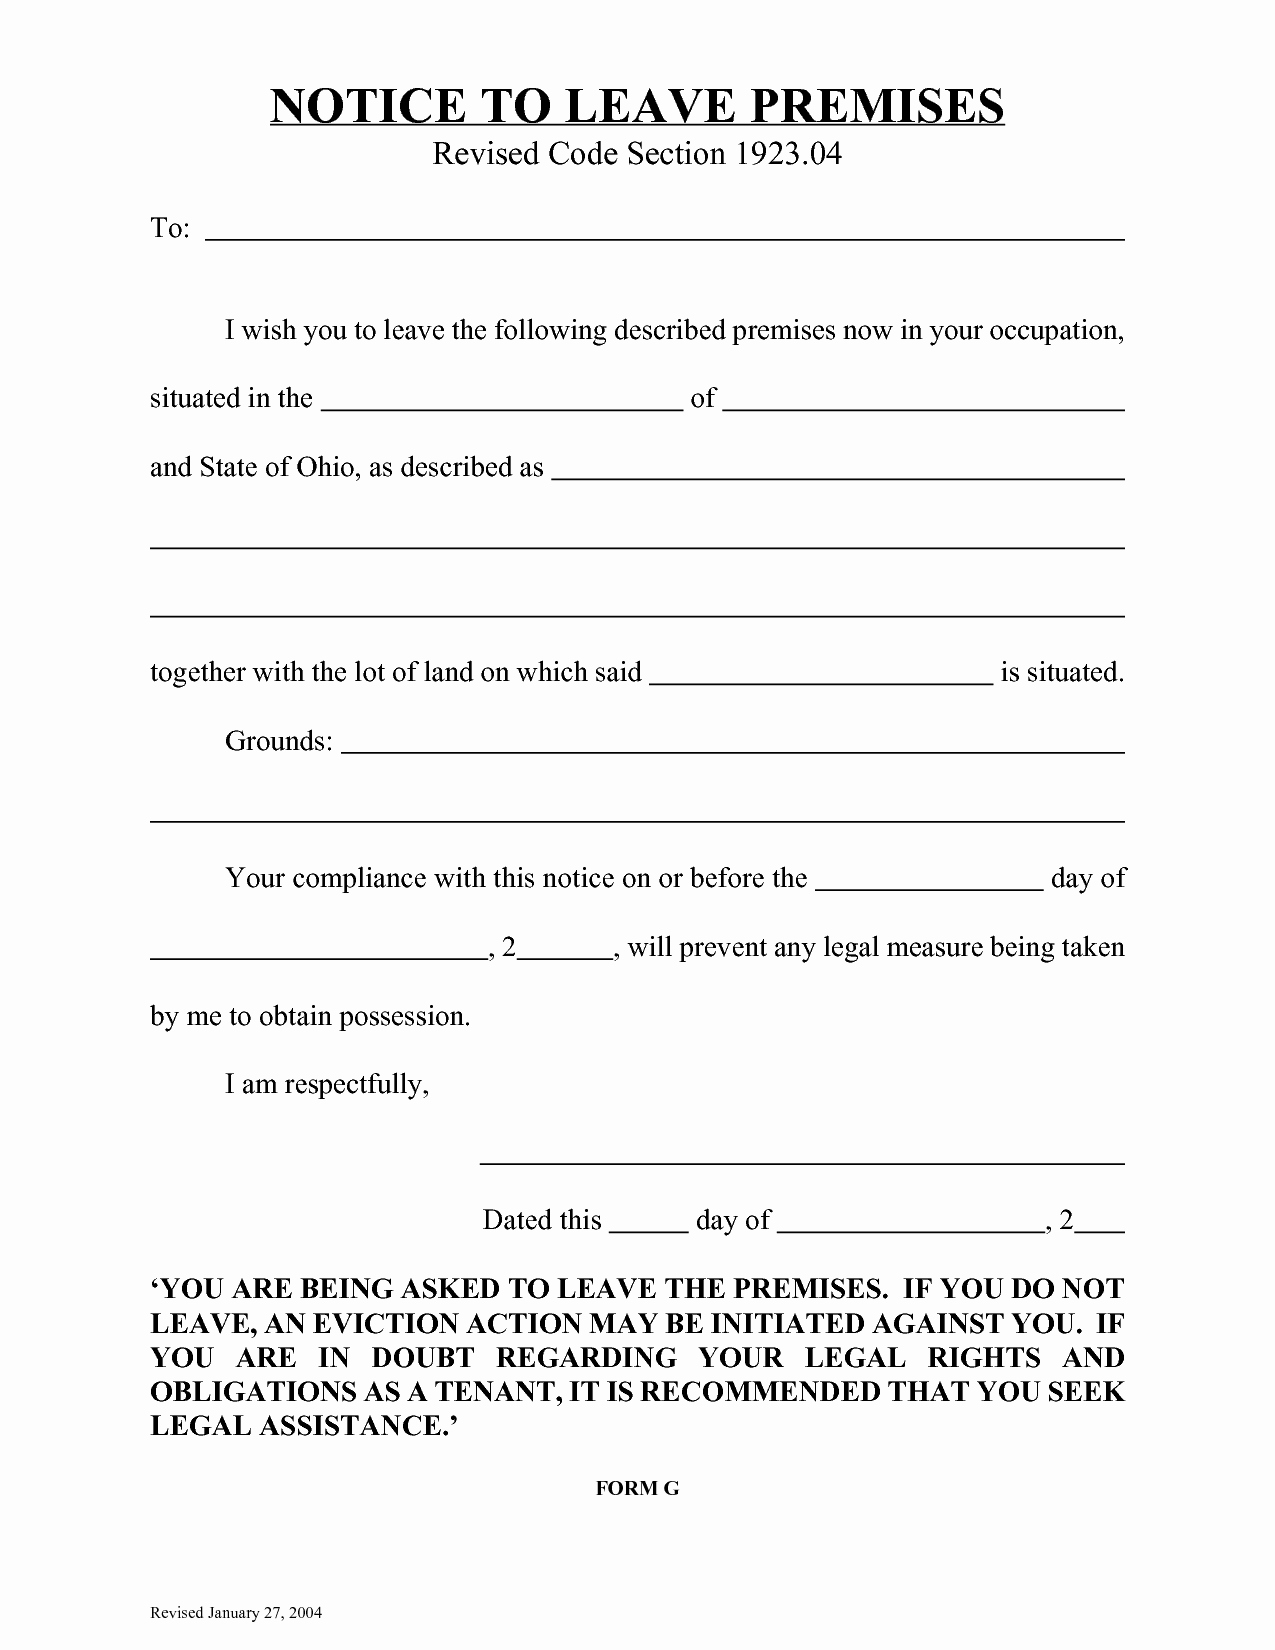 Florida Eviction Notice Template Best Of 10 Best Eviction Notice Florida form Blank